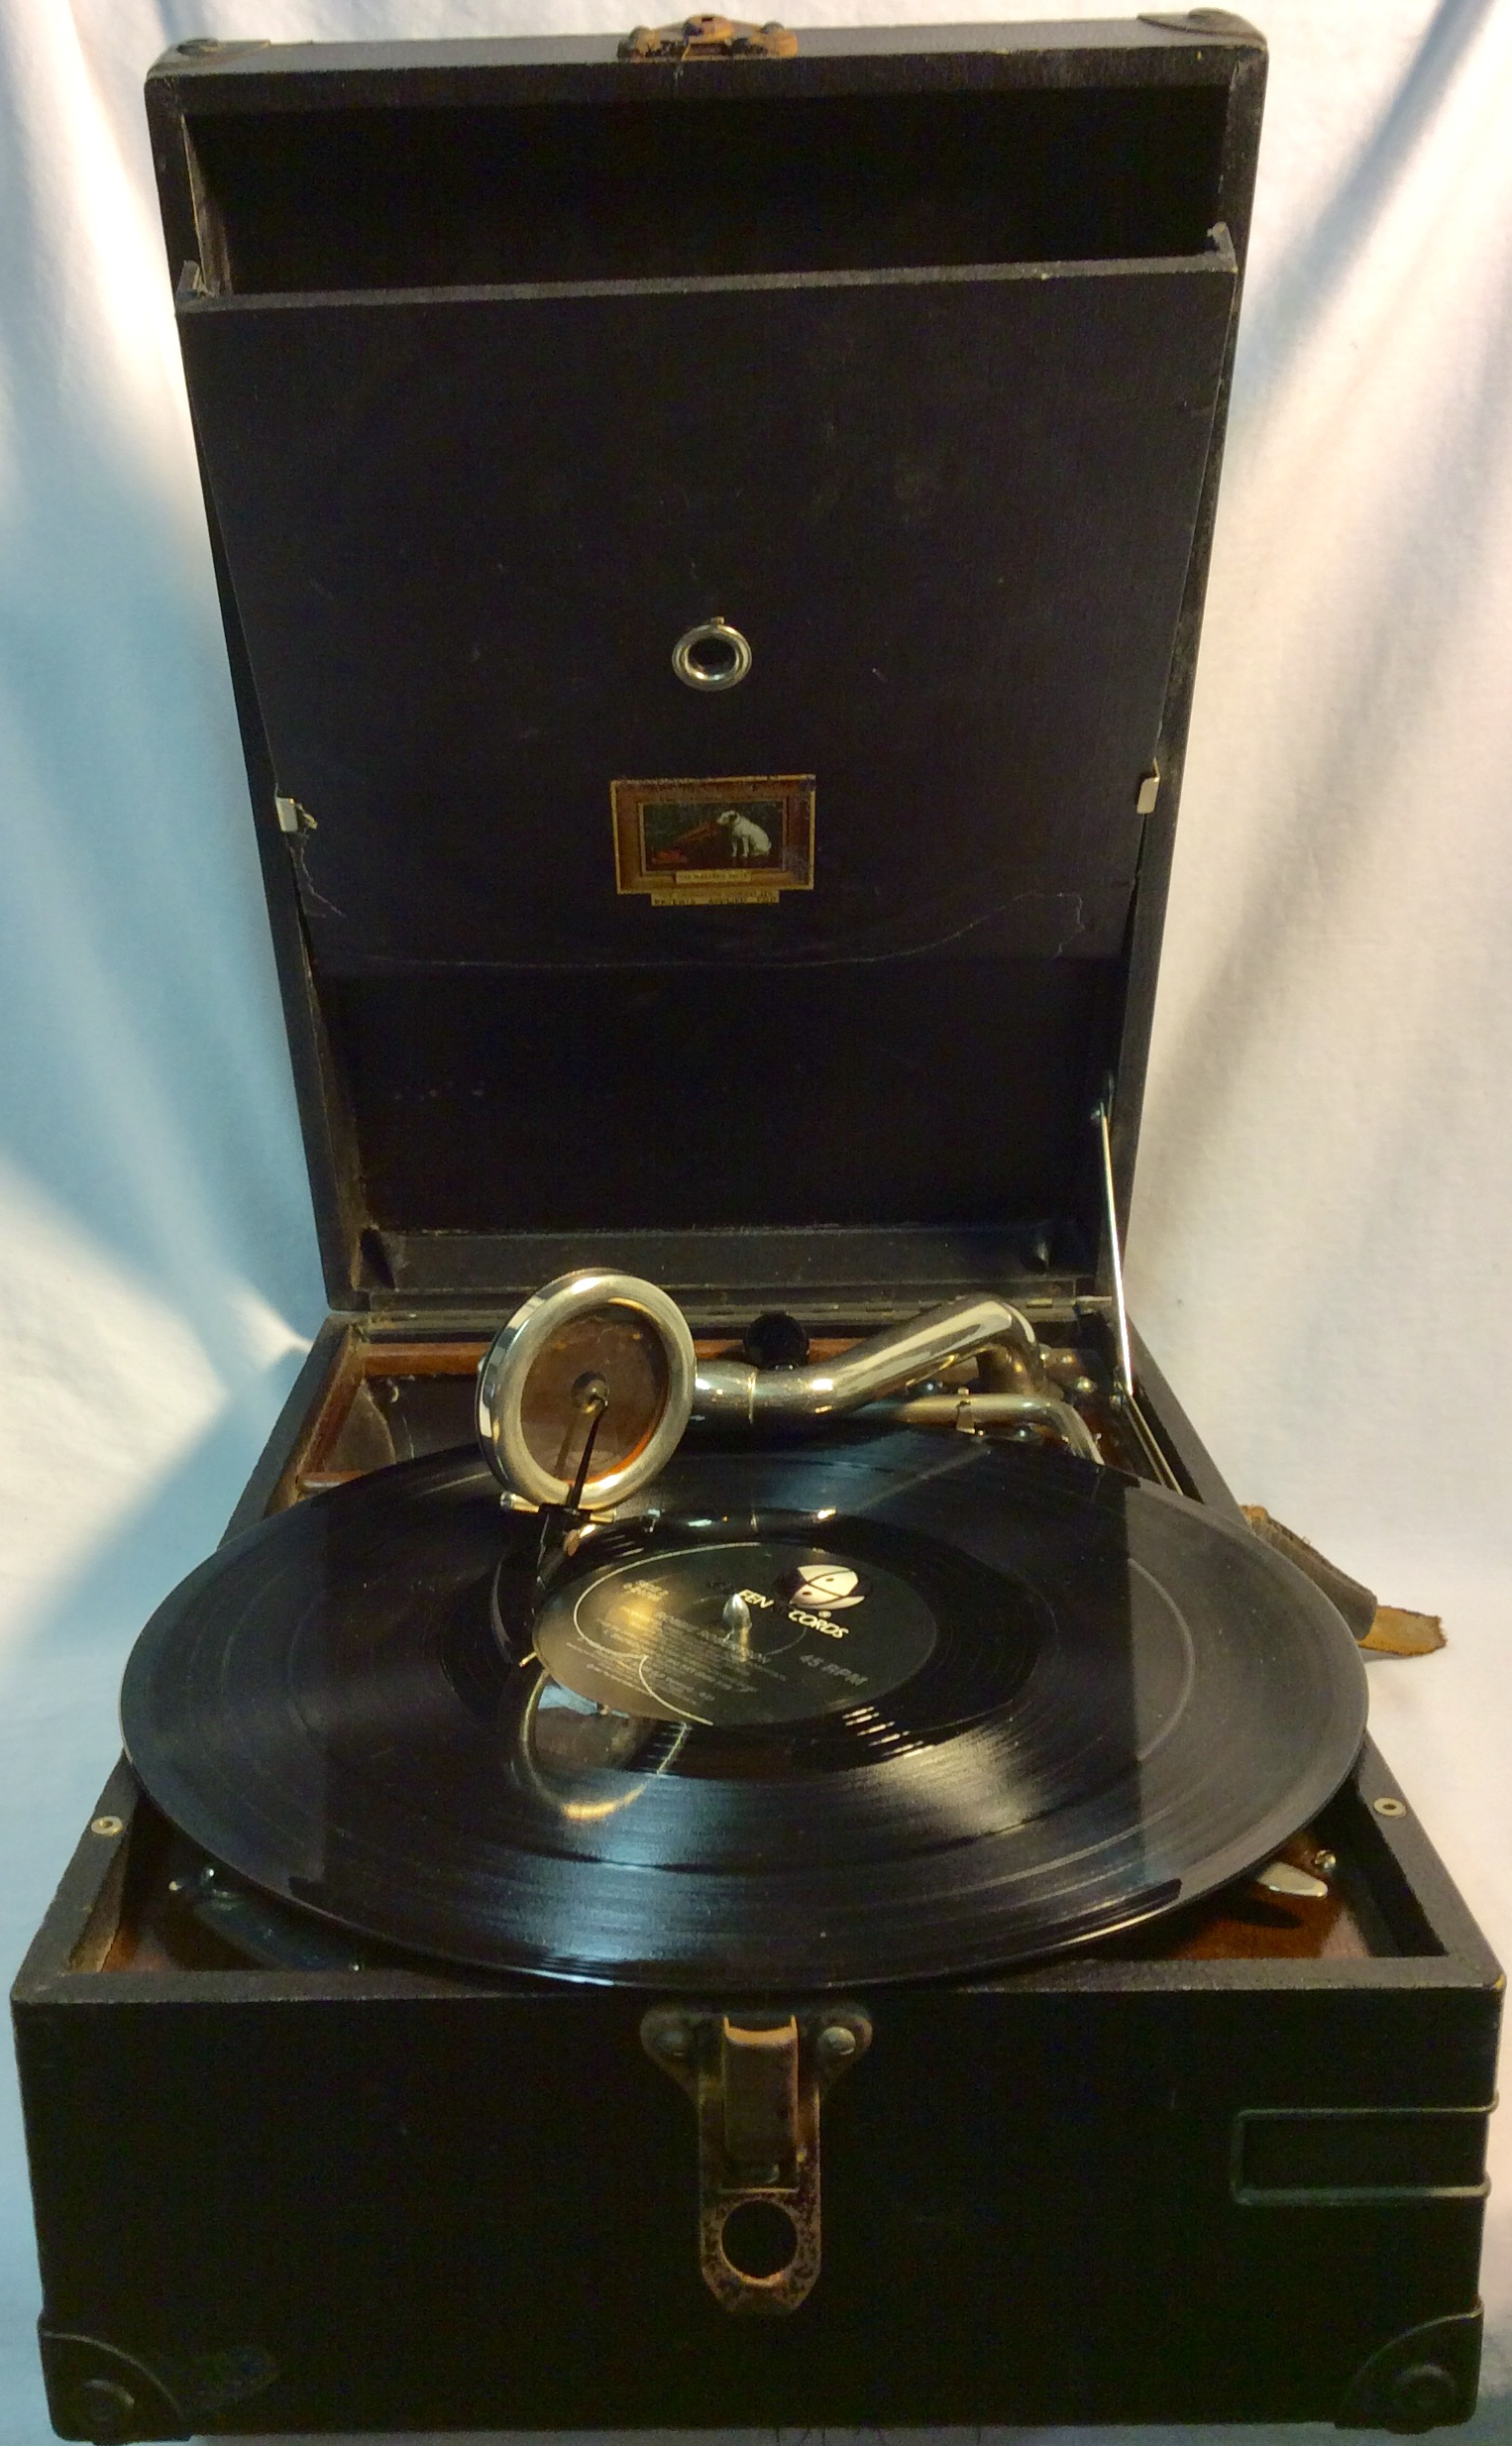 Record player with wooden case